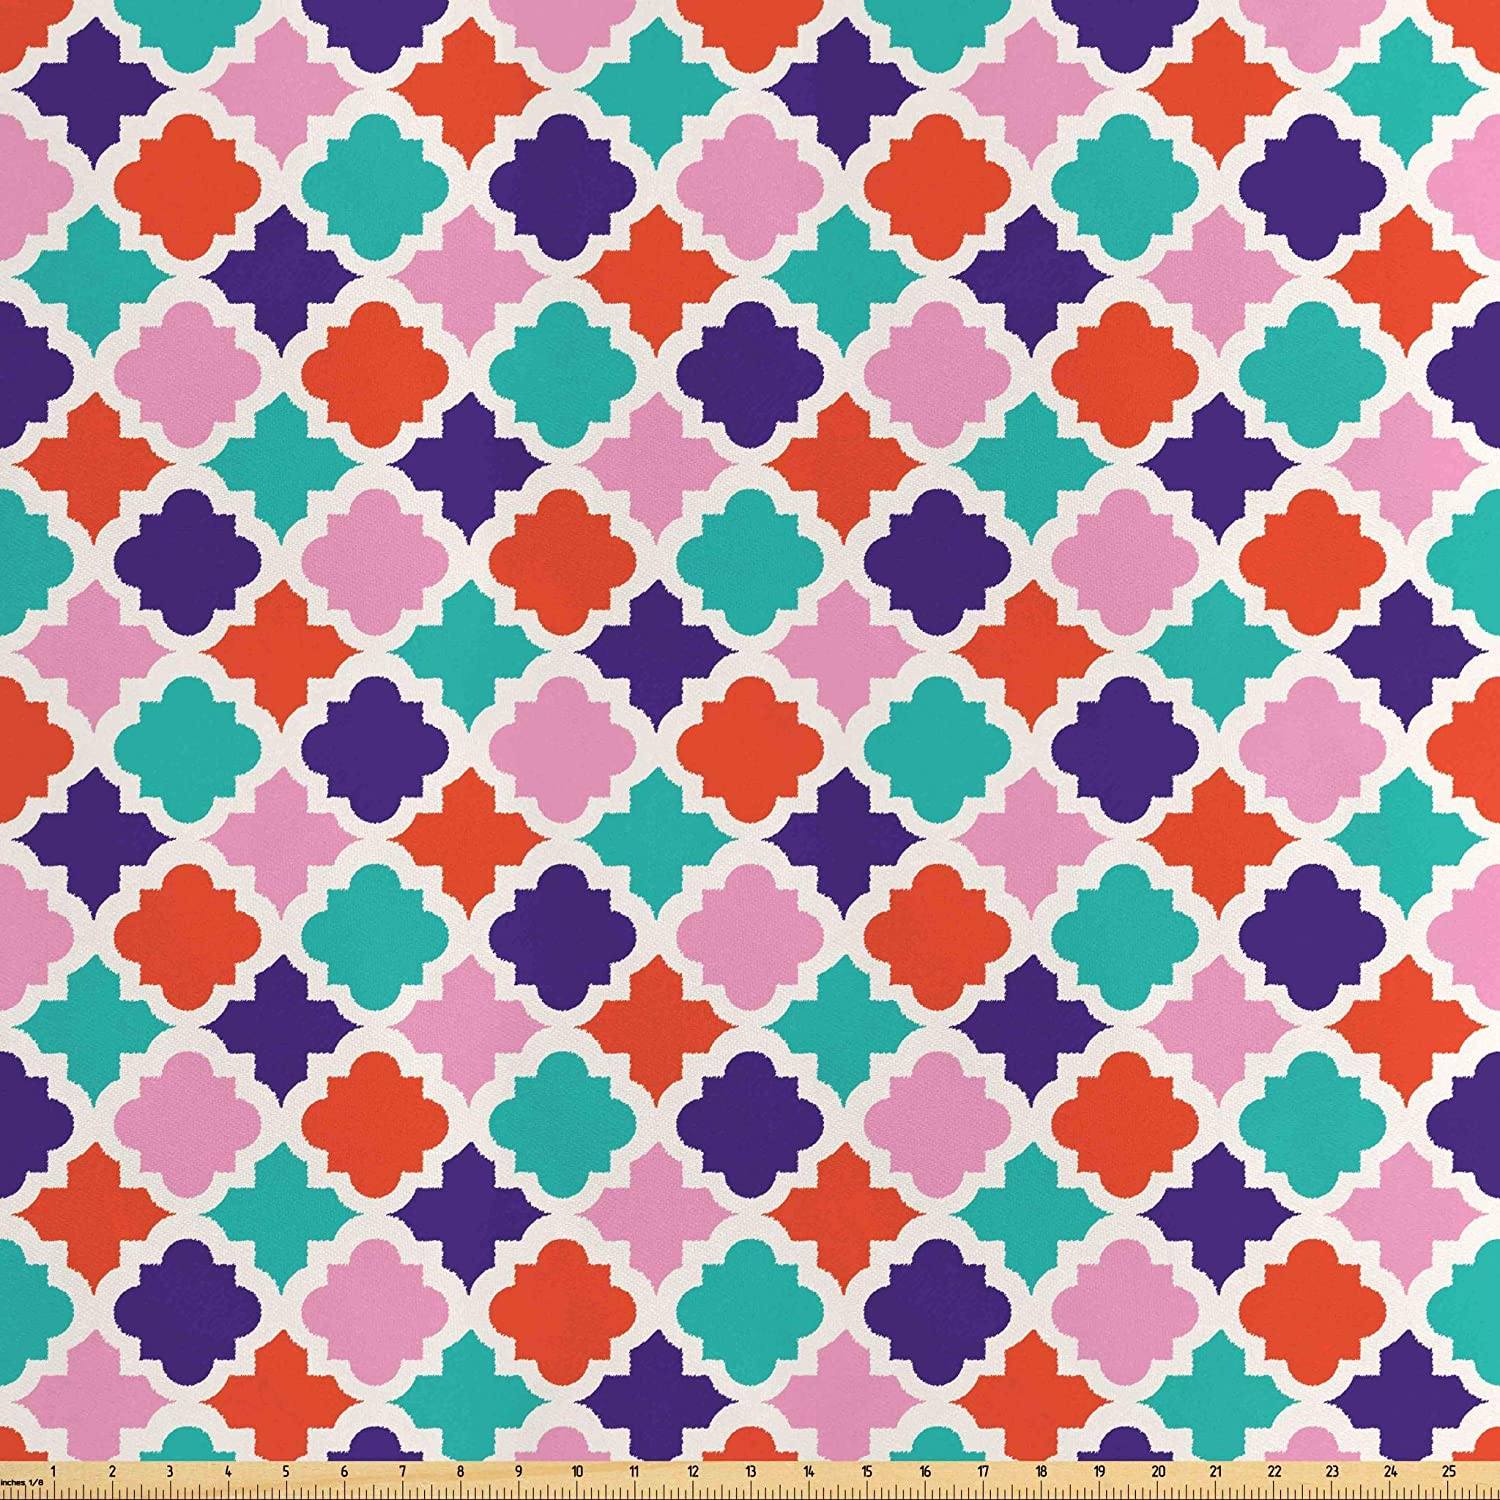 Lunarable Ikat Fabric by The Yard, Colorful Mosaic Tiles Style Ikat Indonesian Esatern Patterns and Motifs, Decorative Satin Fabric for Home Textiles and Crafts, 1 Yard, Multicolor